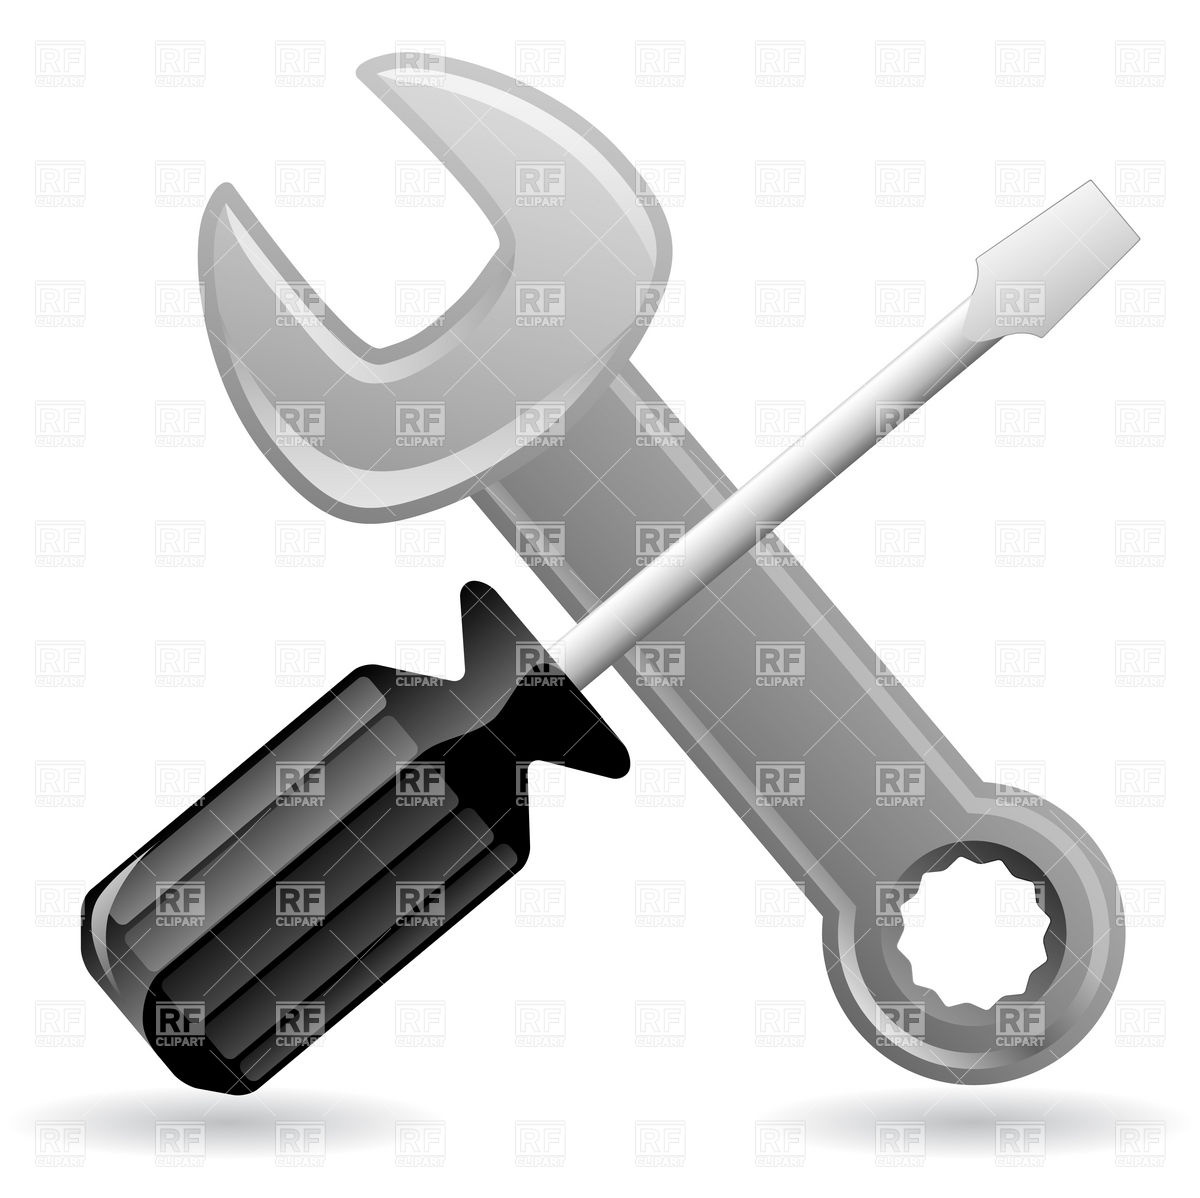 Screwdriver Icon Png Black wrench iScrewdriver Png